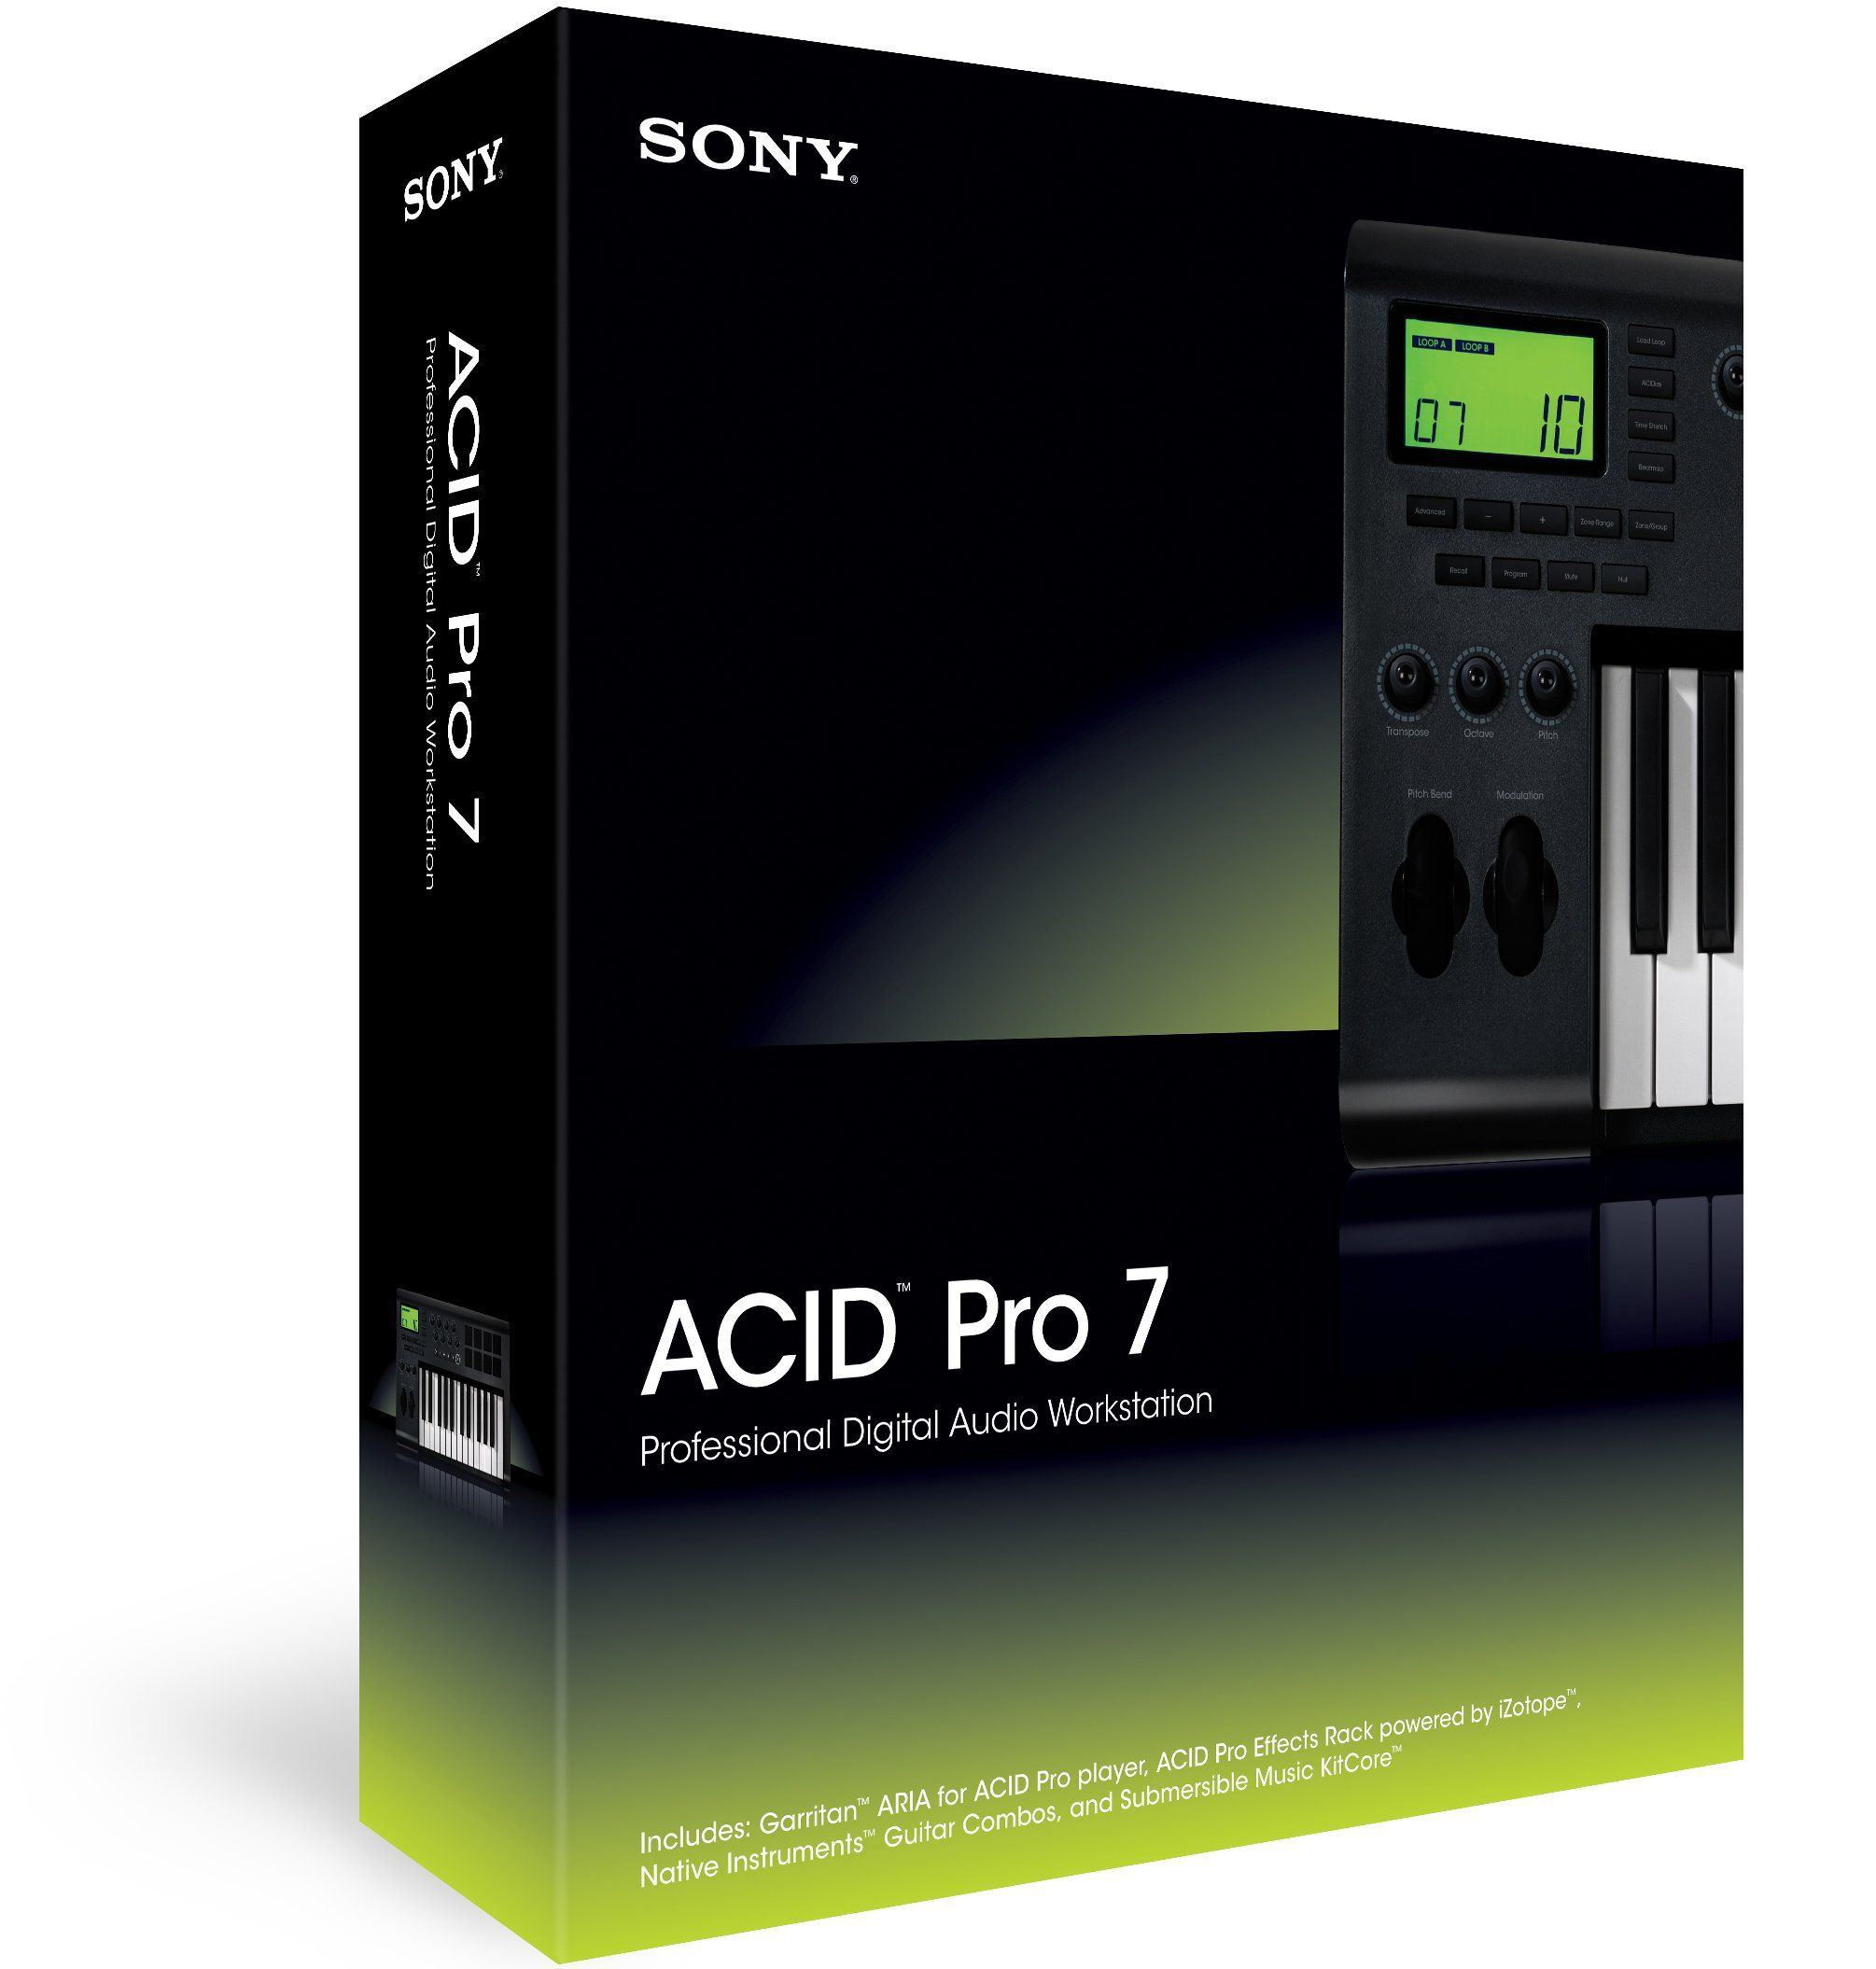 Sony ACID Pro 7 Crack with Serial Number Free Download | My